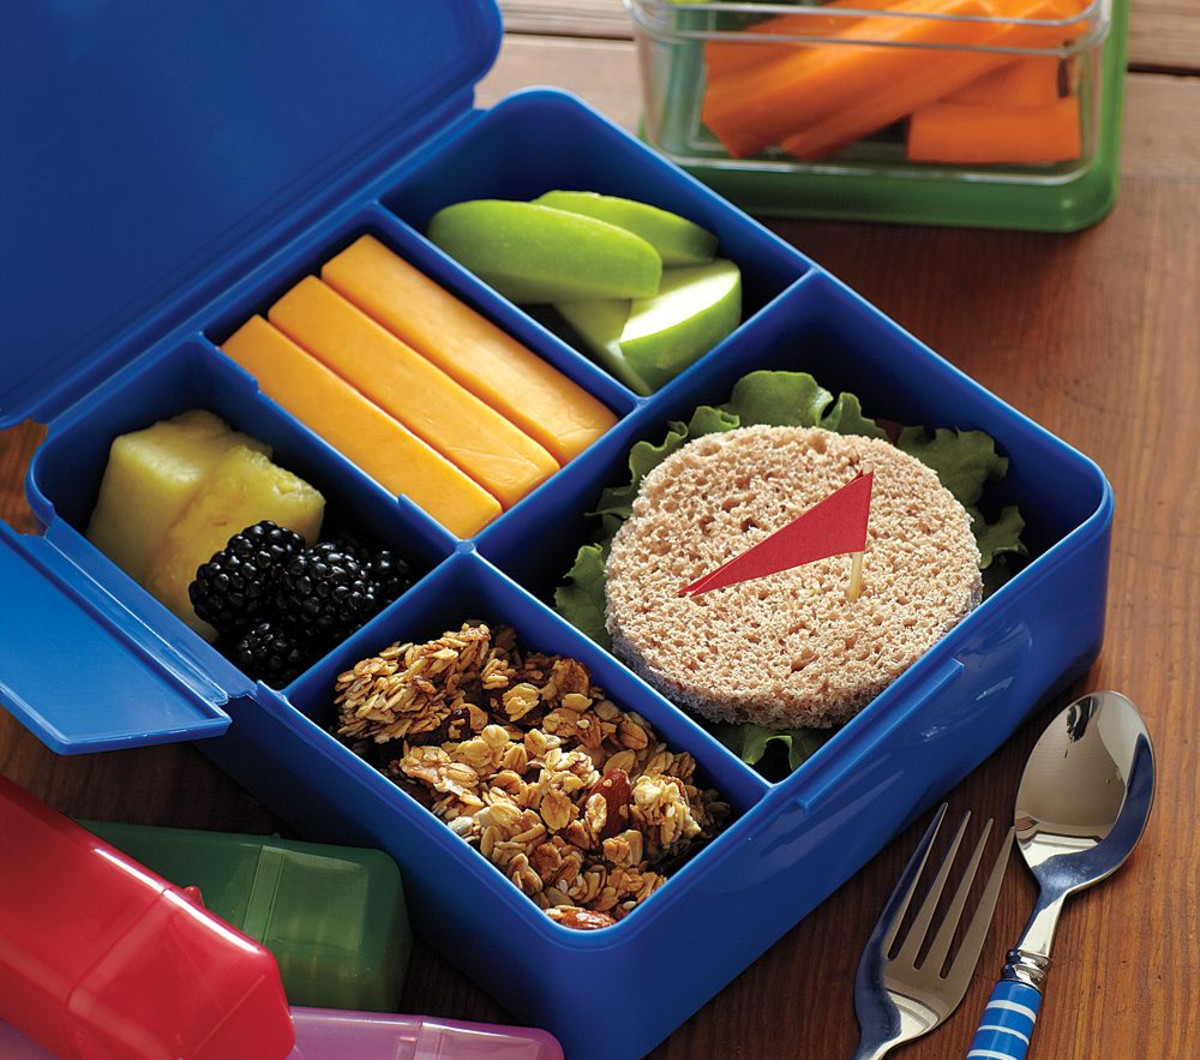 Bento Box Containers